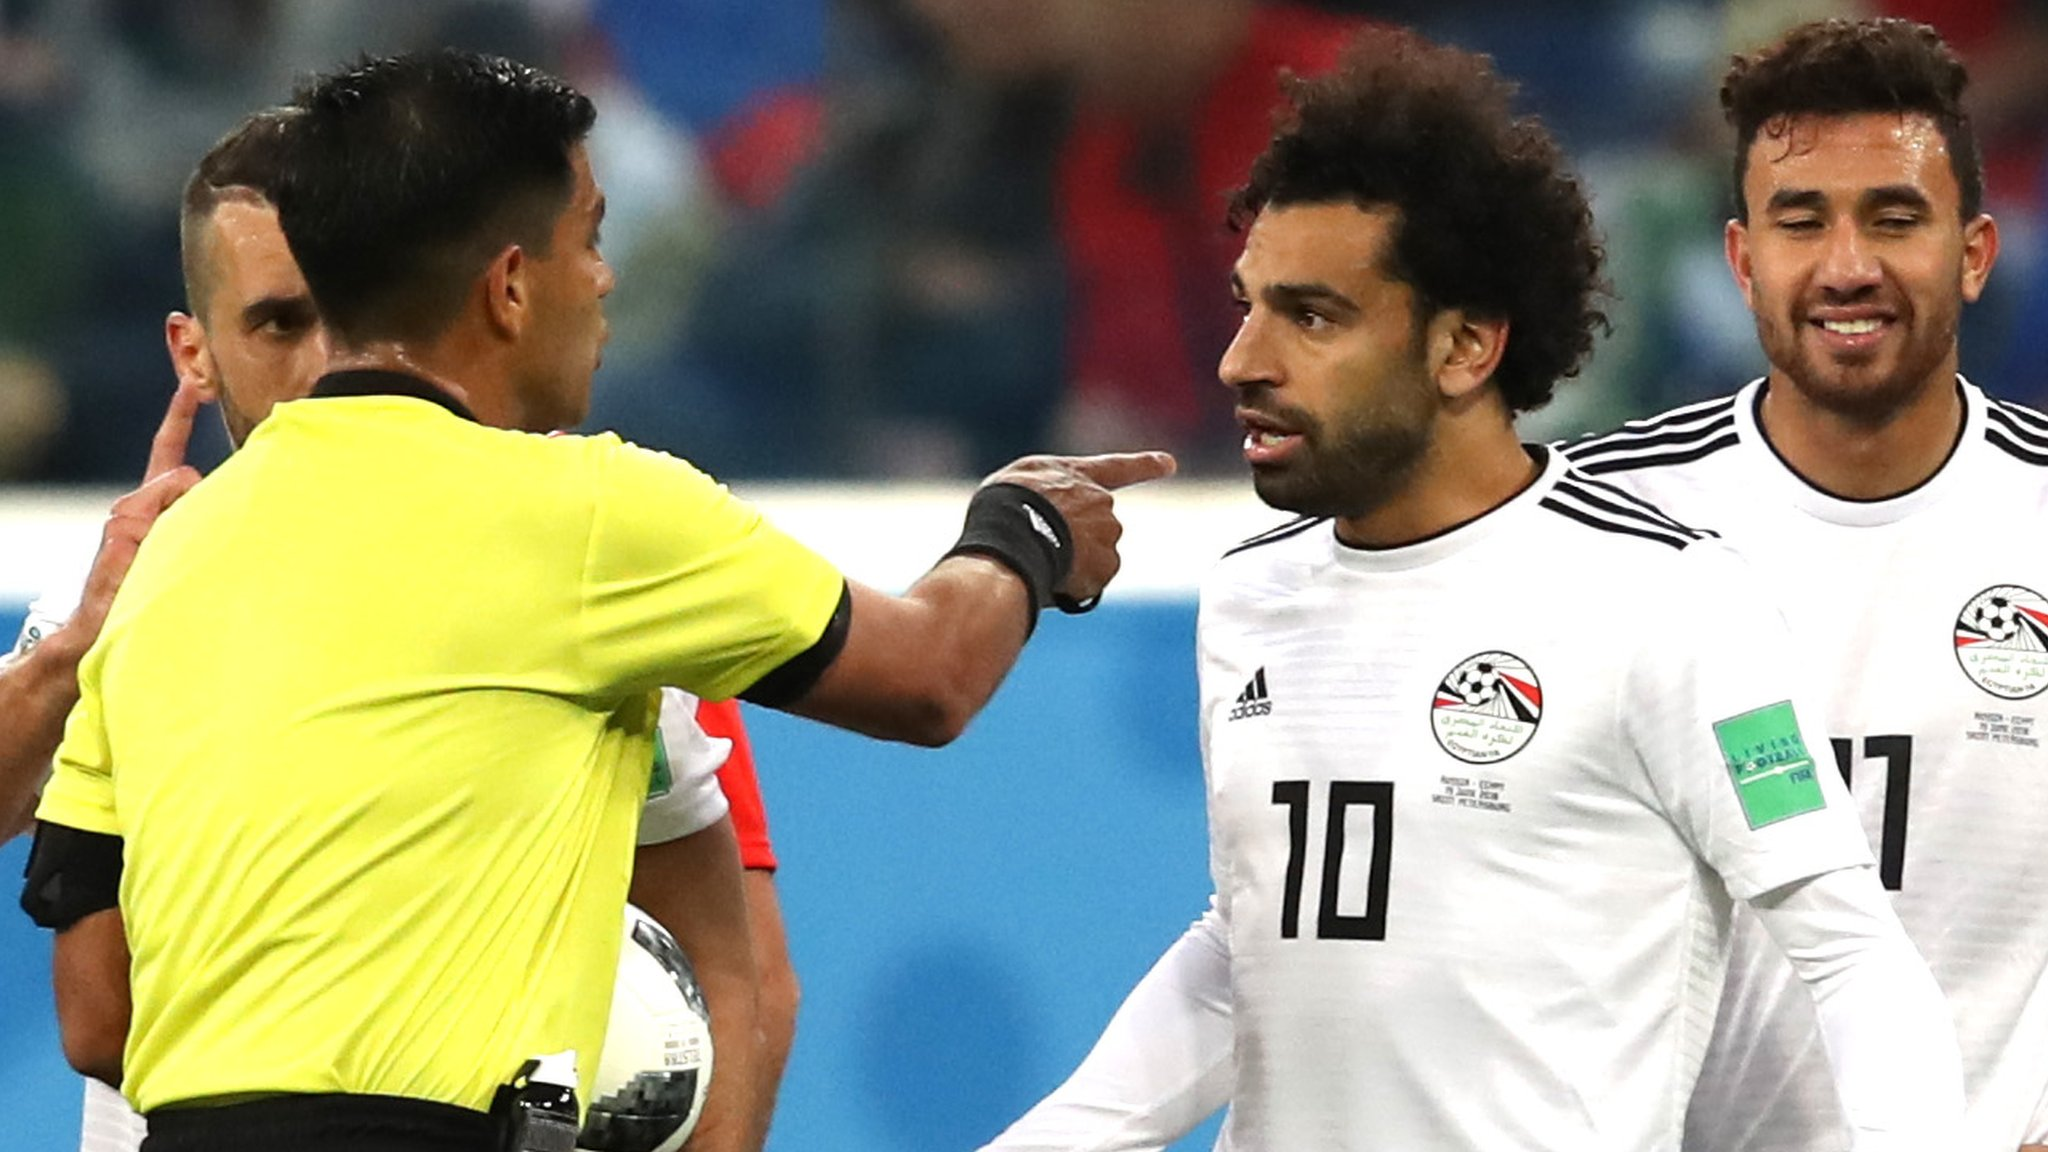 Egypt to make formal complaint about referee